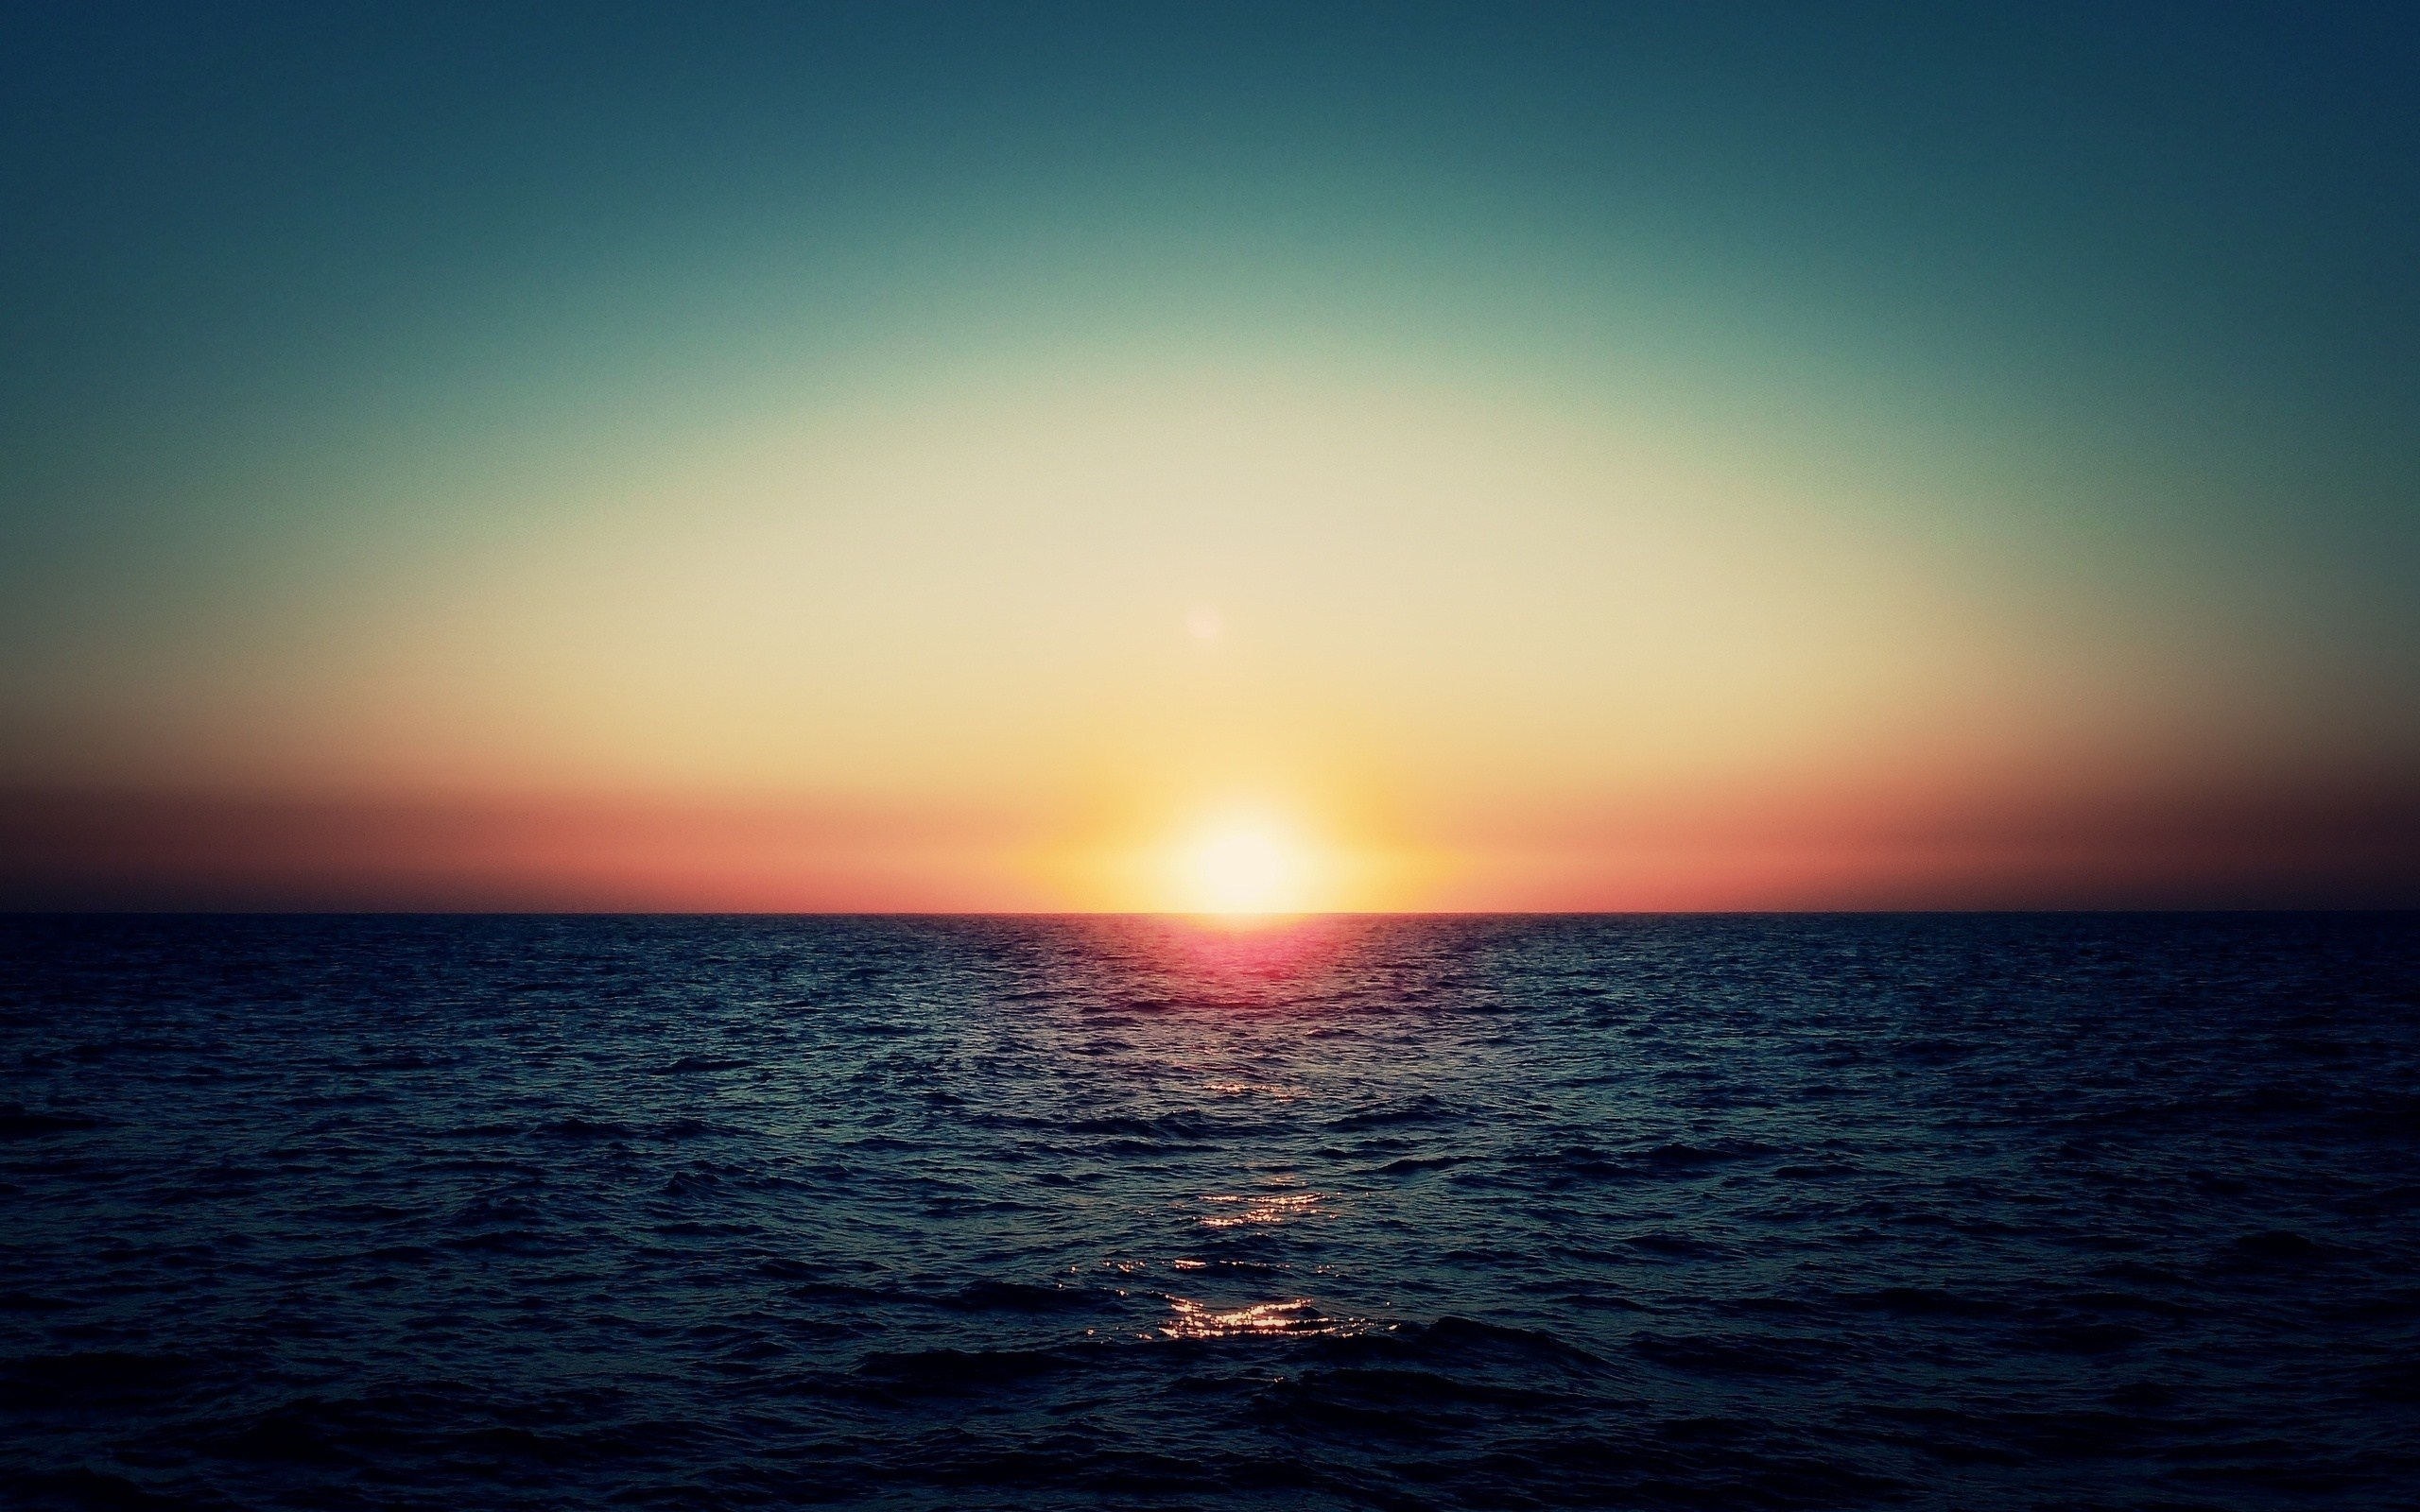 sunset desktop backgrounds hd